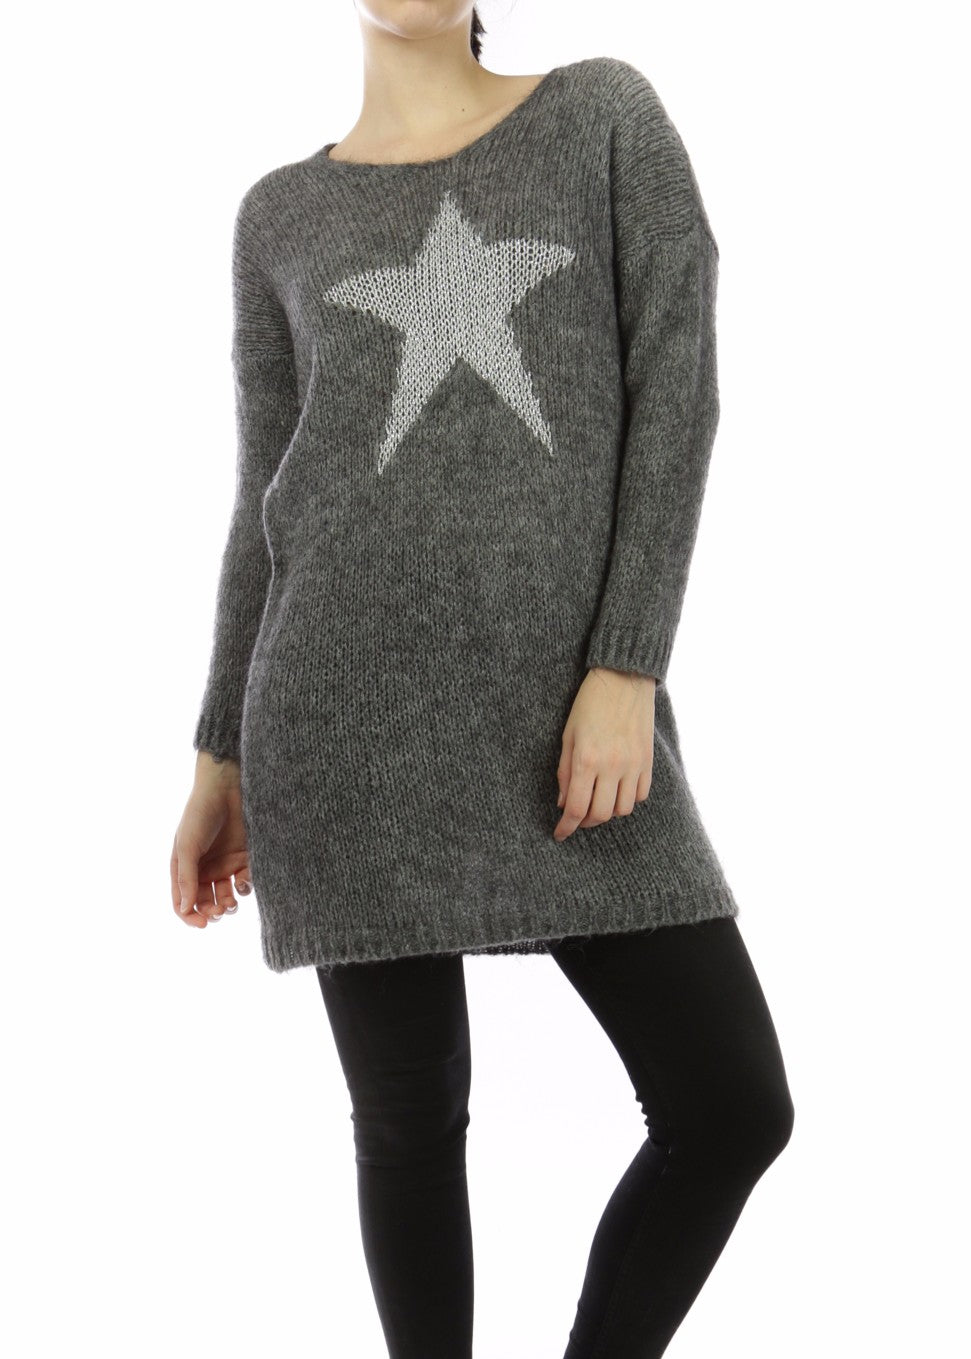 GRAZIA - Star Knit Tunic - SOLD OUT